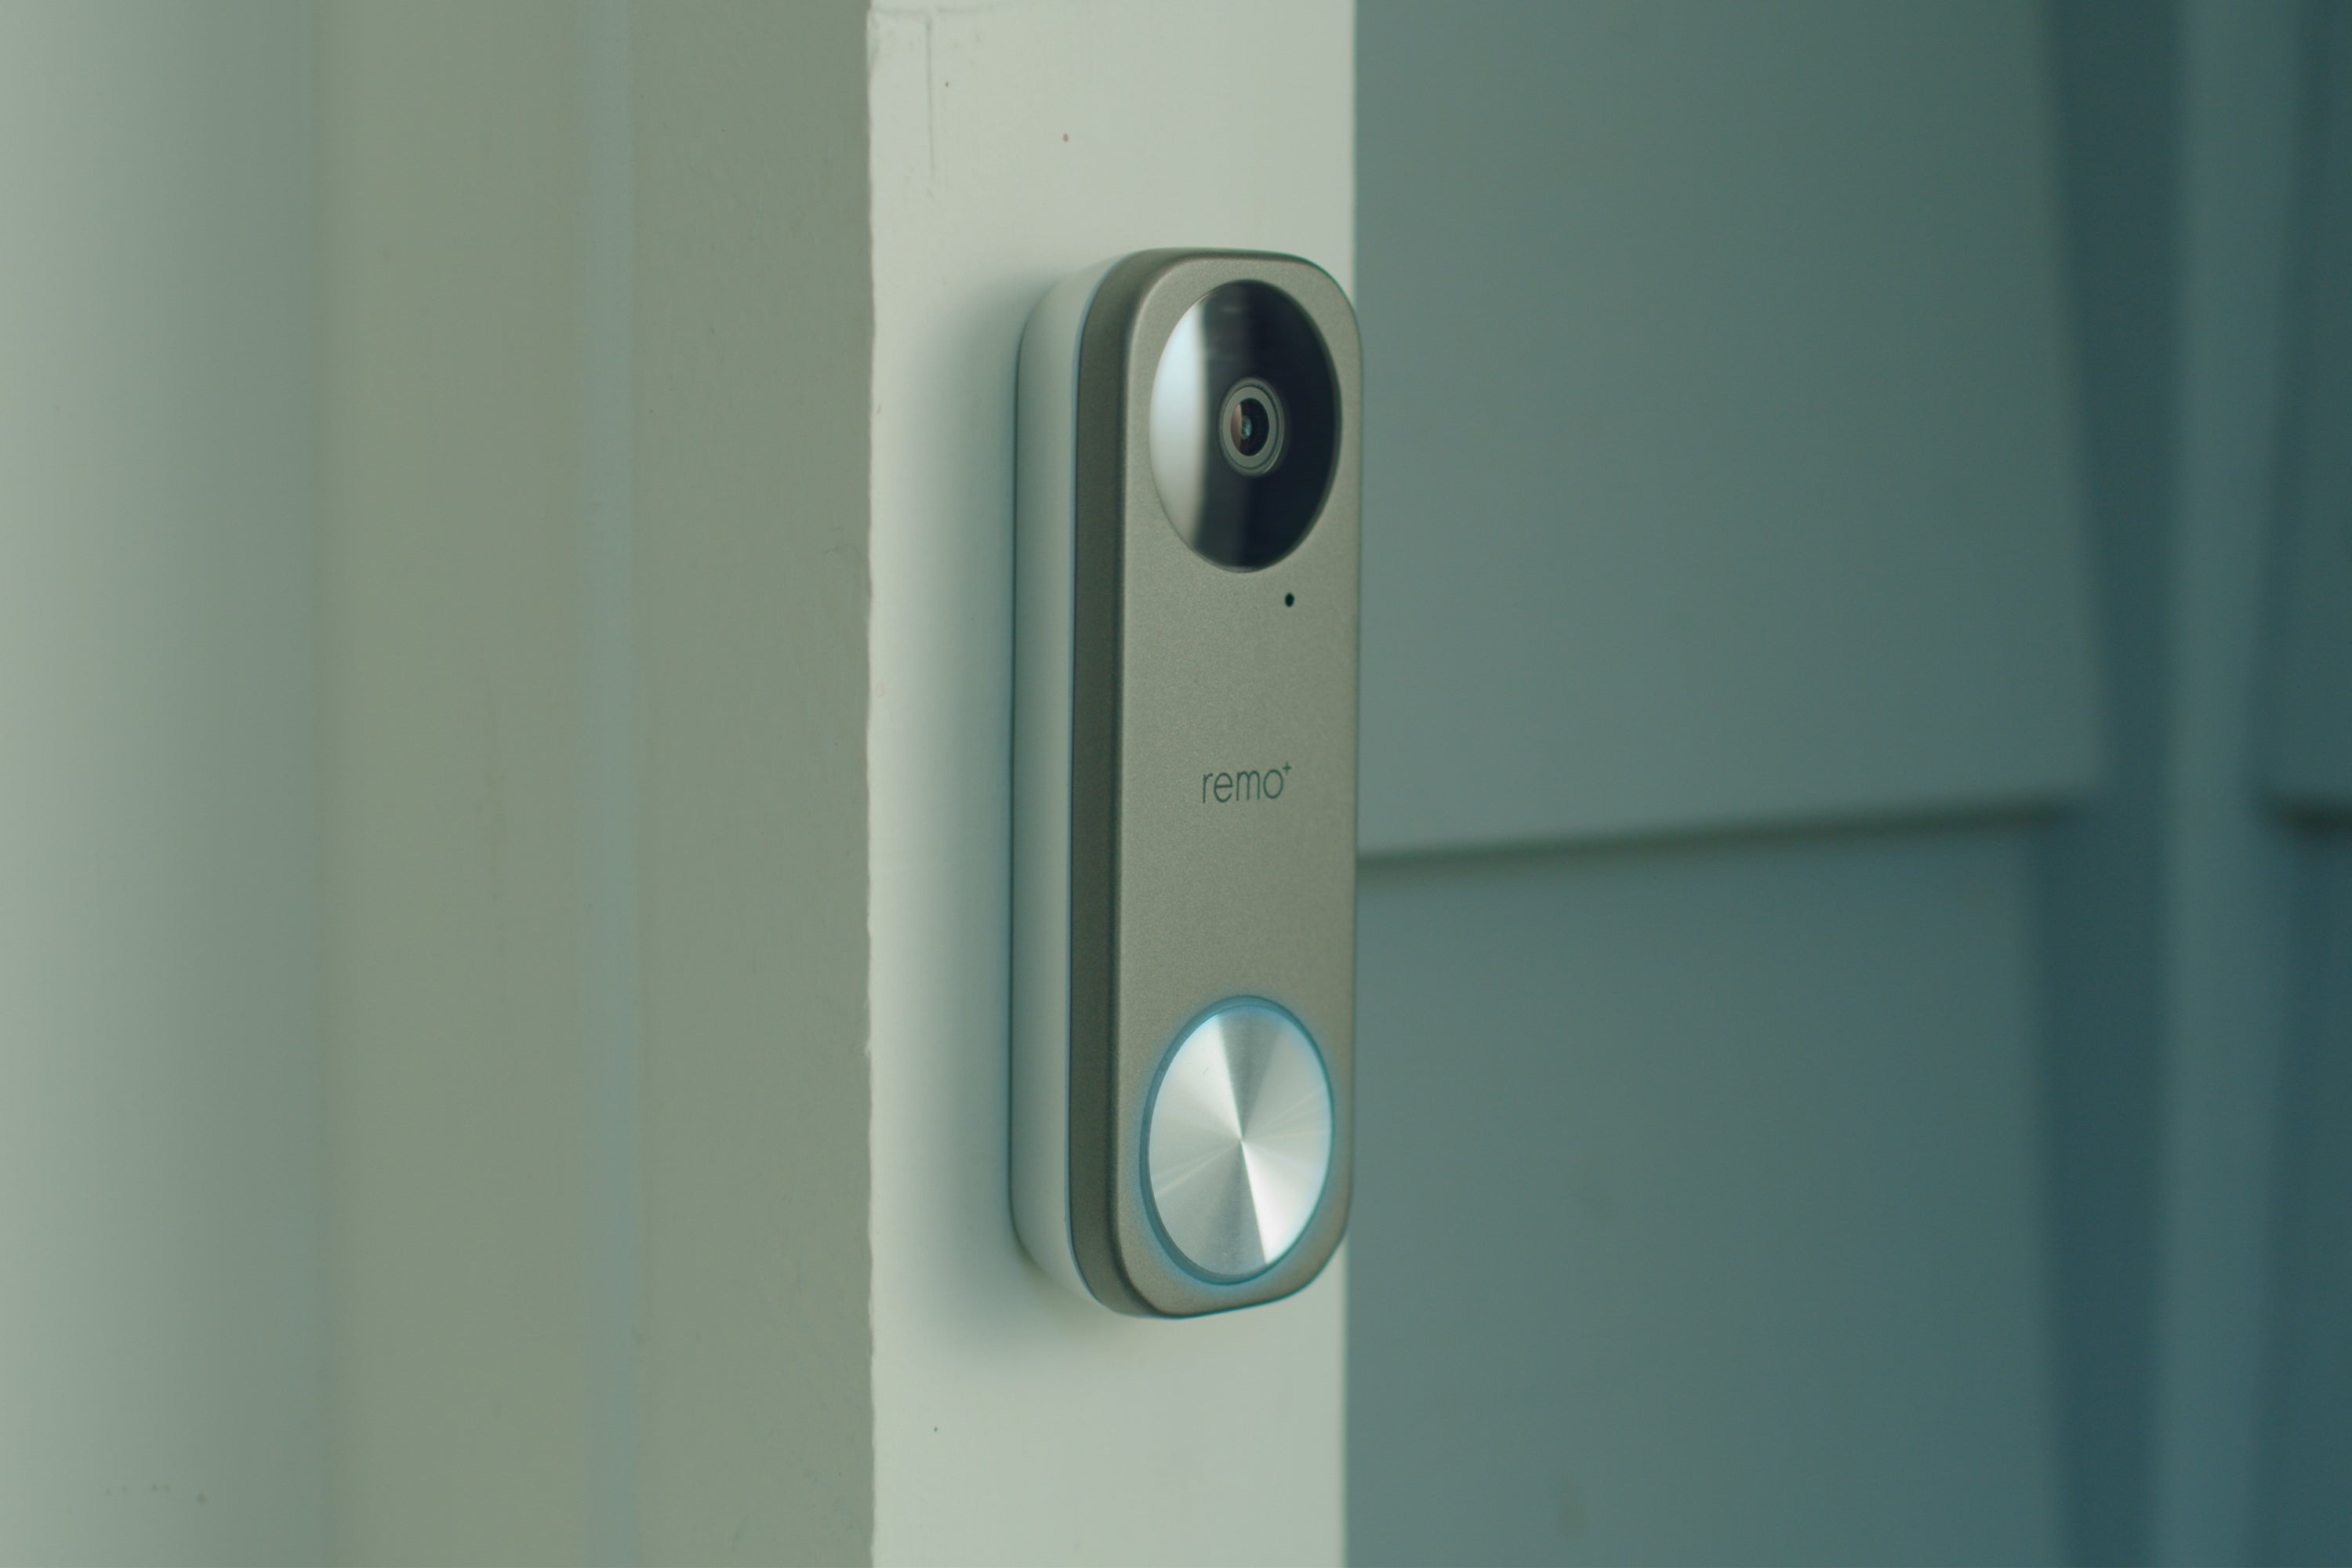 Remo  Remobell S Video Doorbell Review  This One U2019s Priced